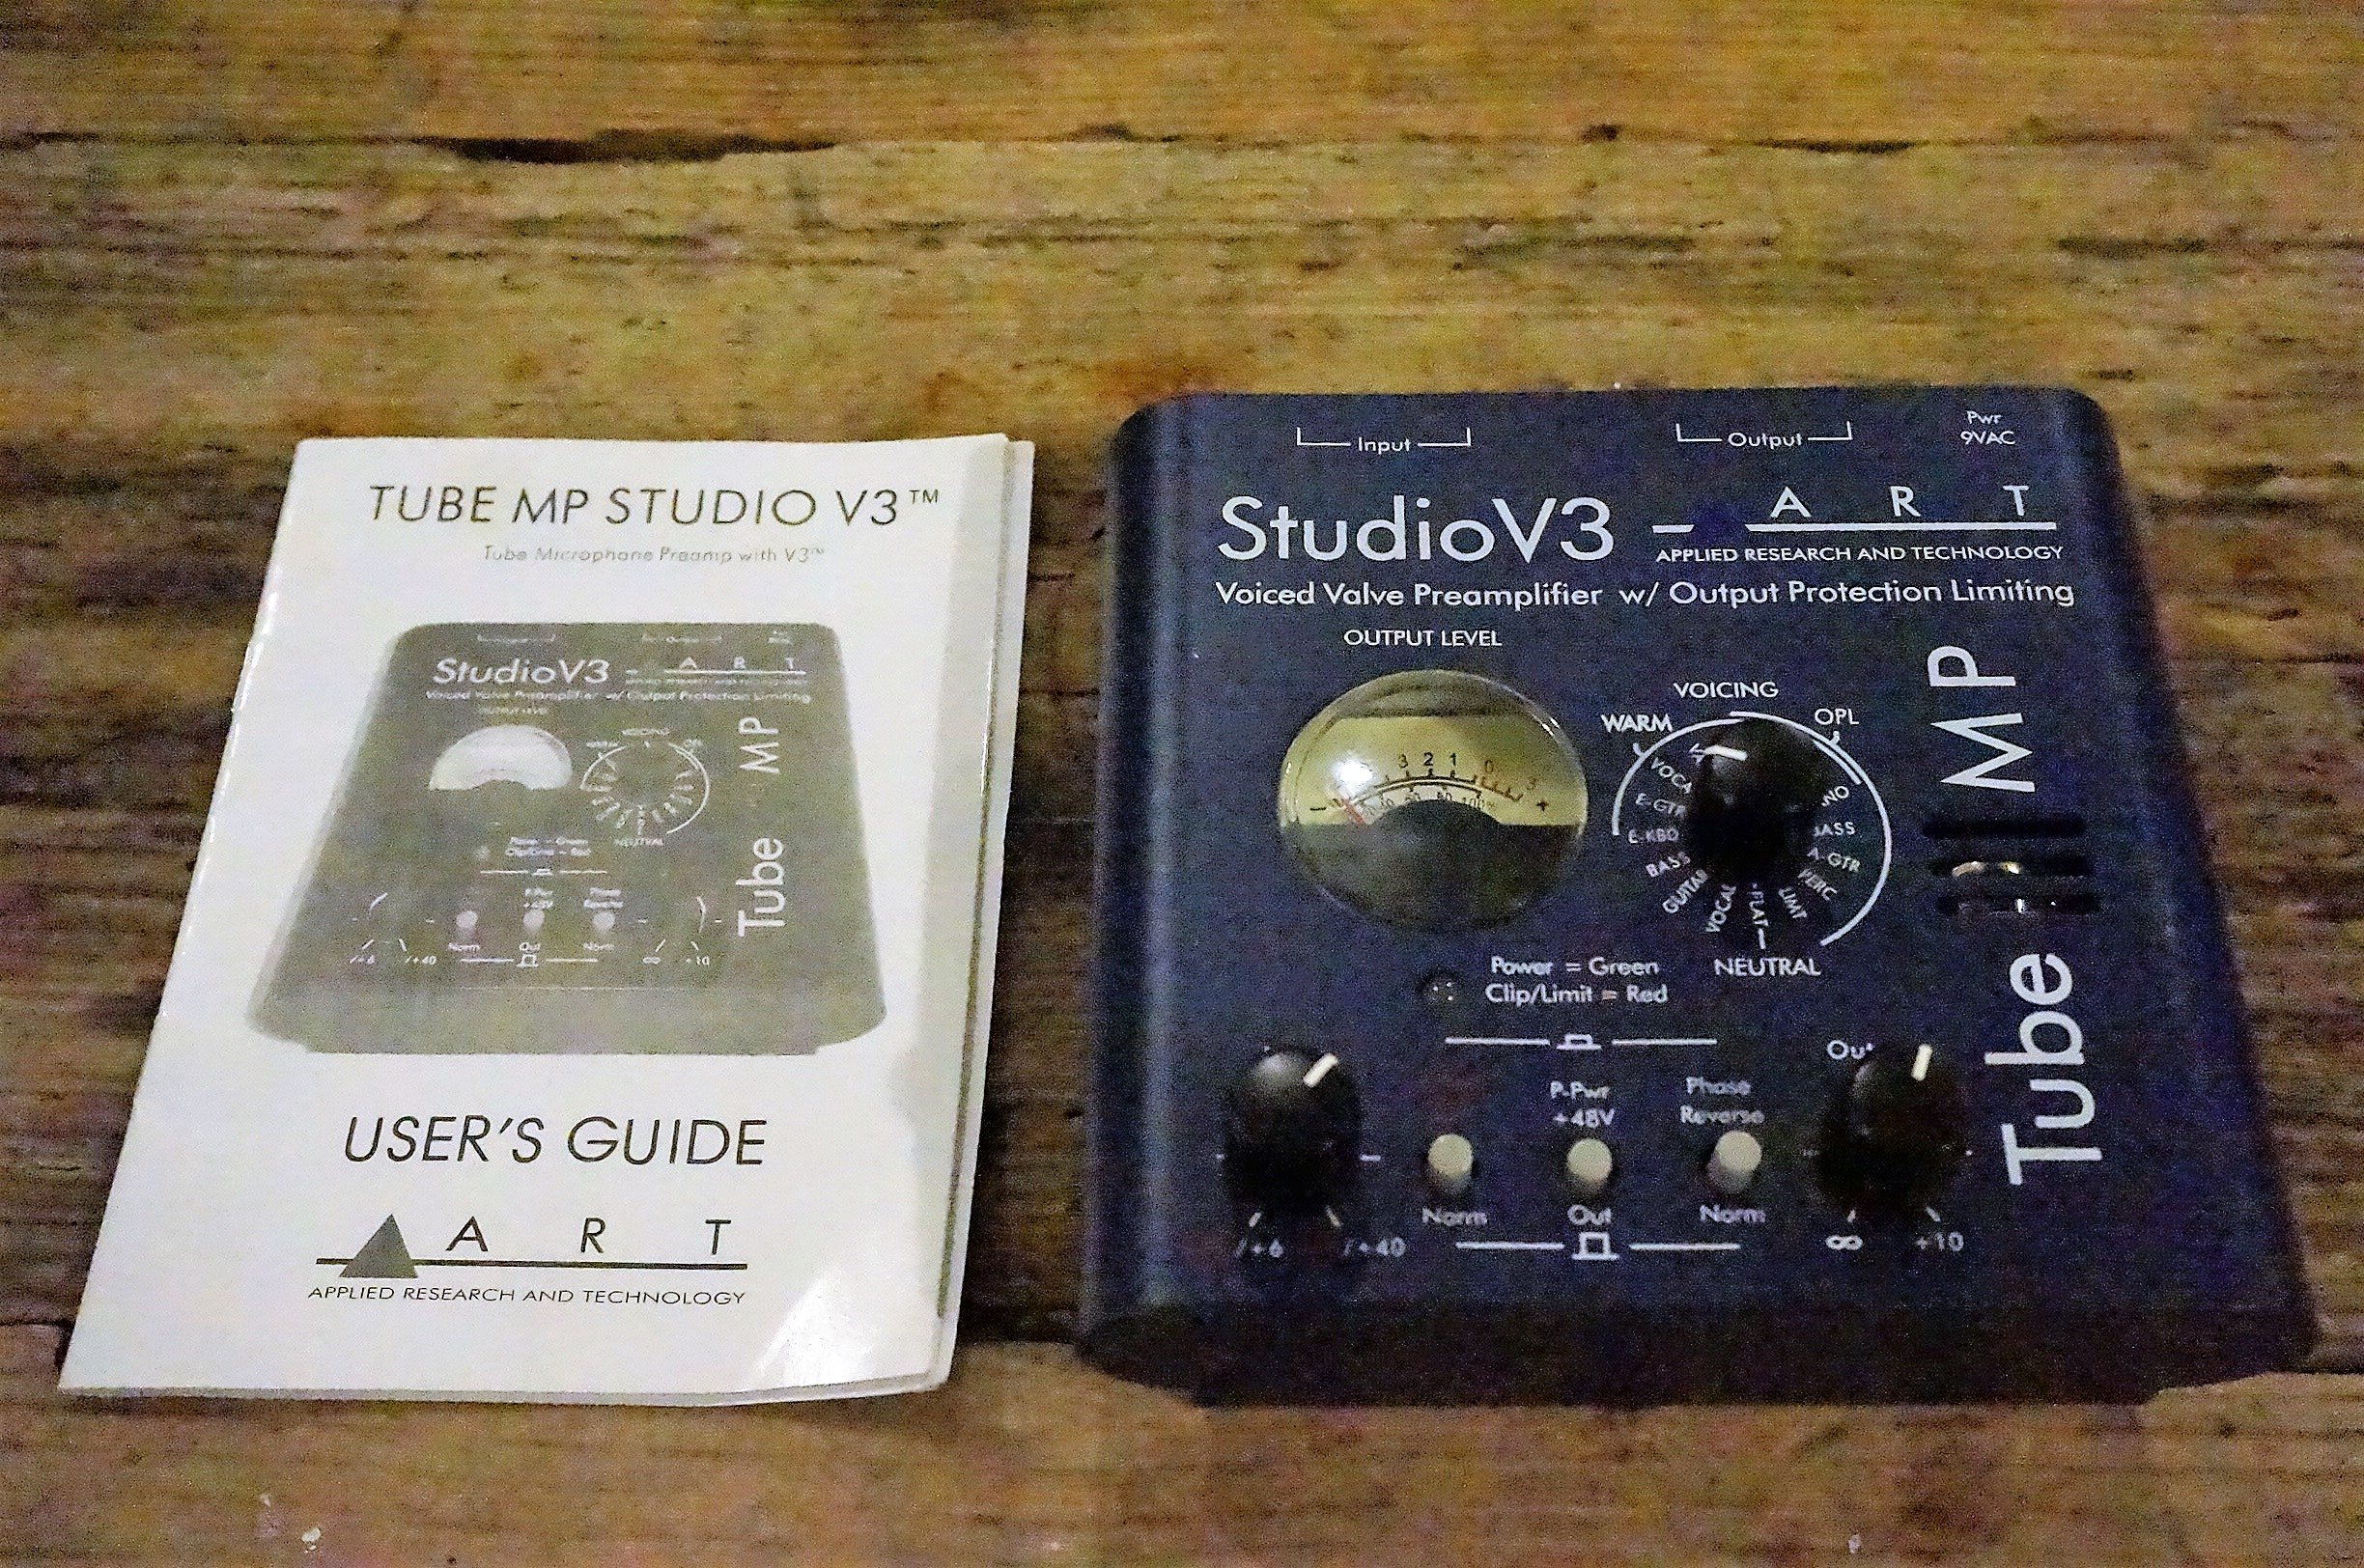 ART – TUBE MP Studio V3